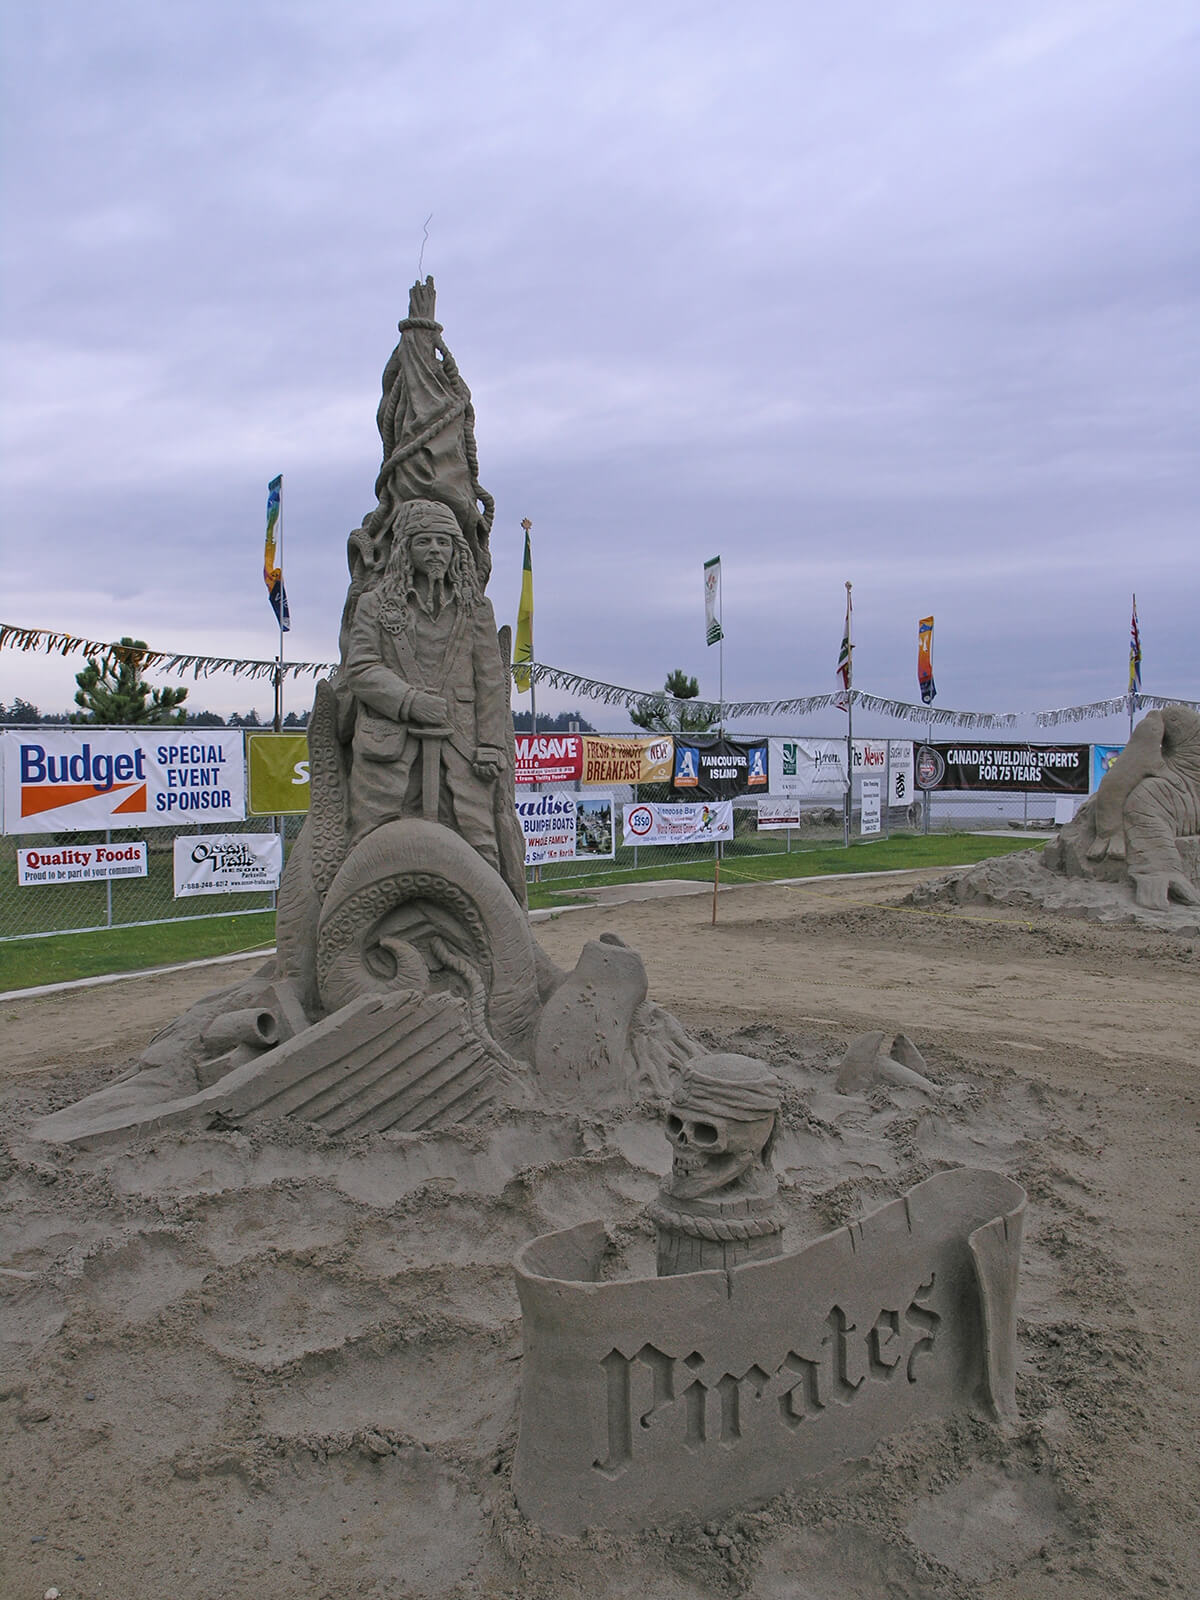 Parksville Beach Fest is one of the top 5 summer festivals in Canada because of the gigantic sandcastle building contest